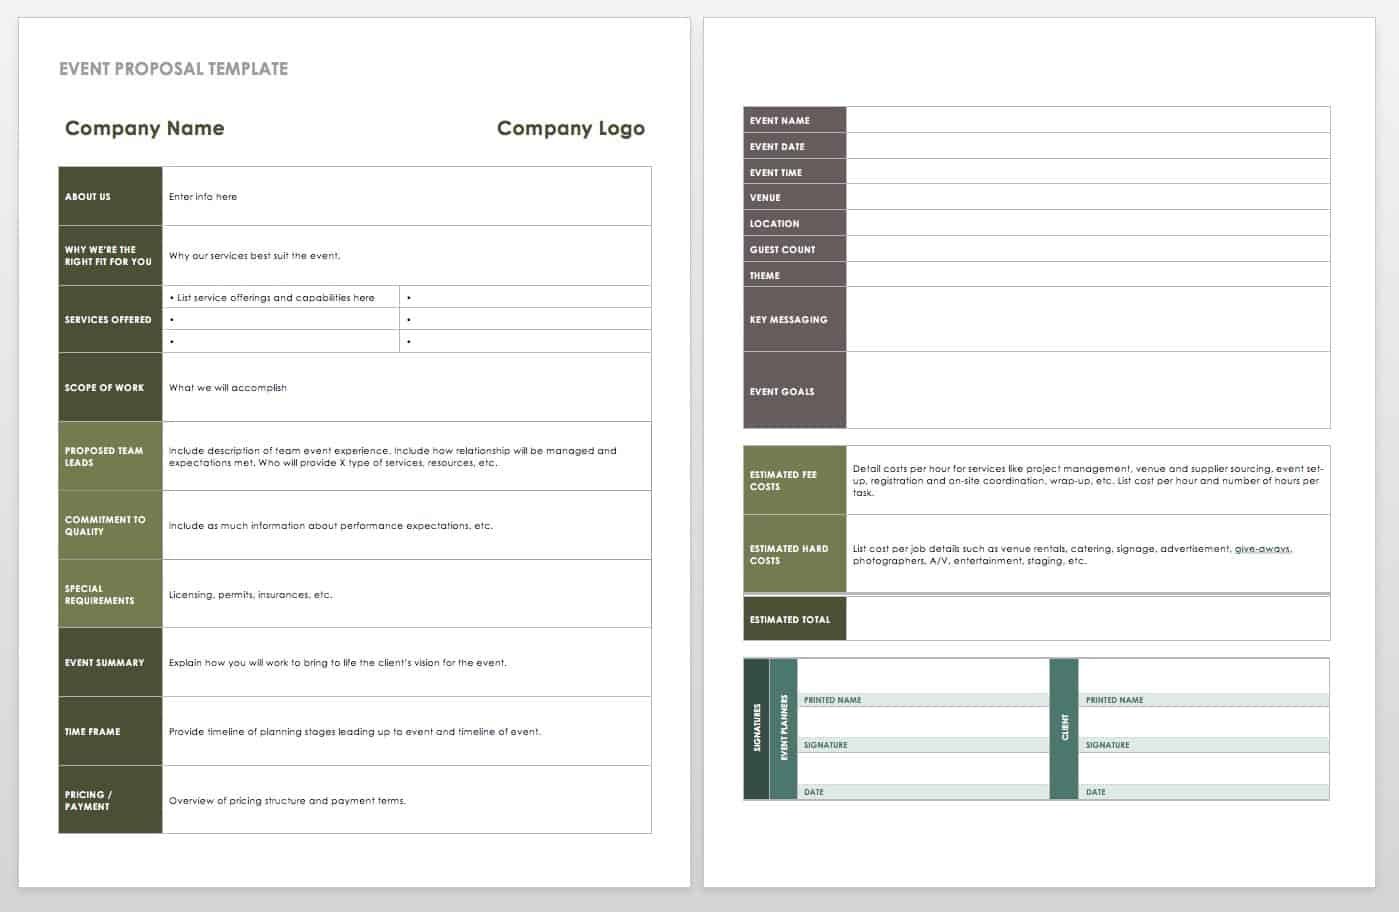 show and event security application form